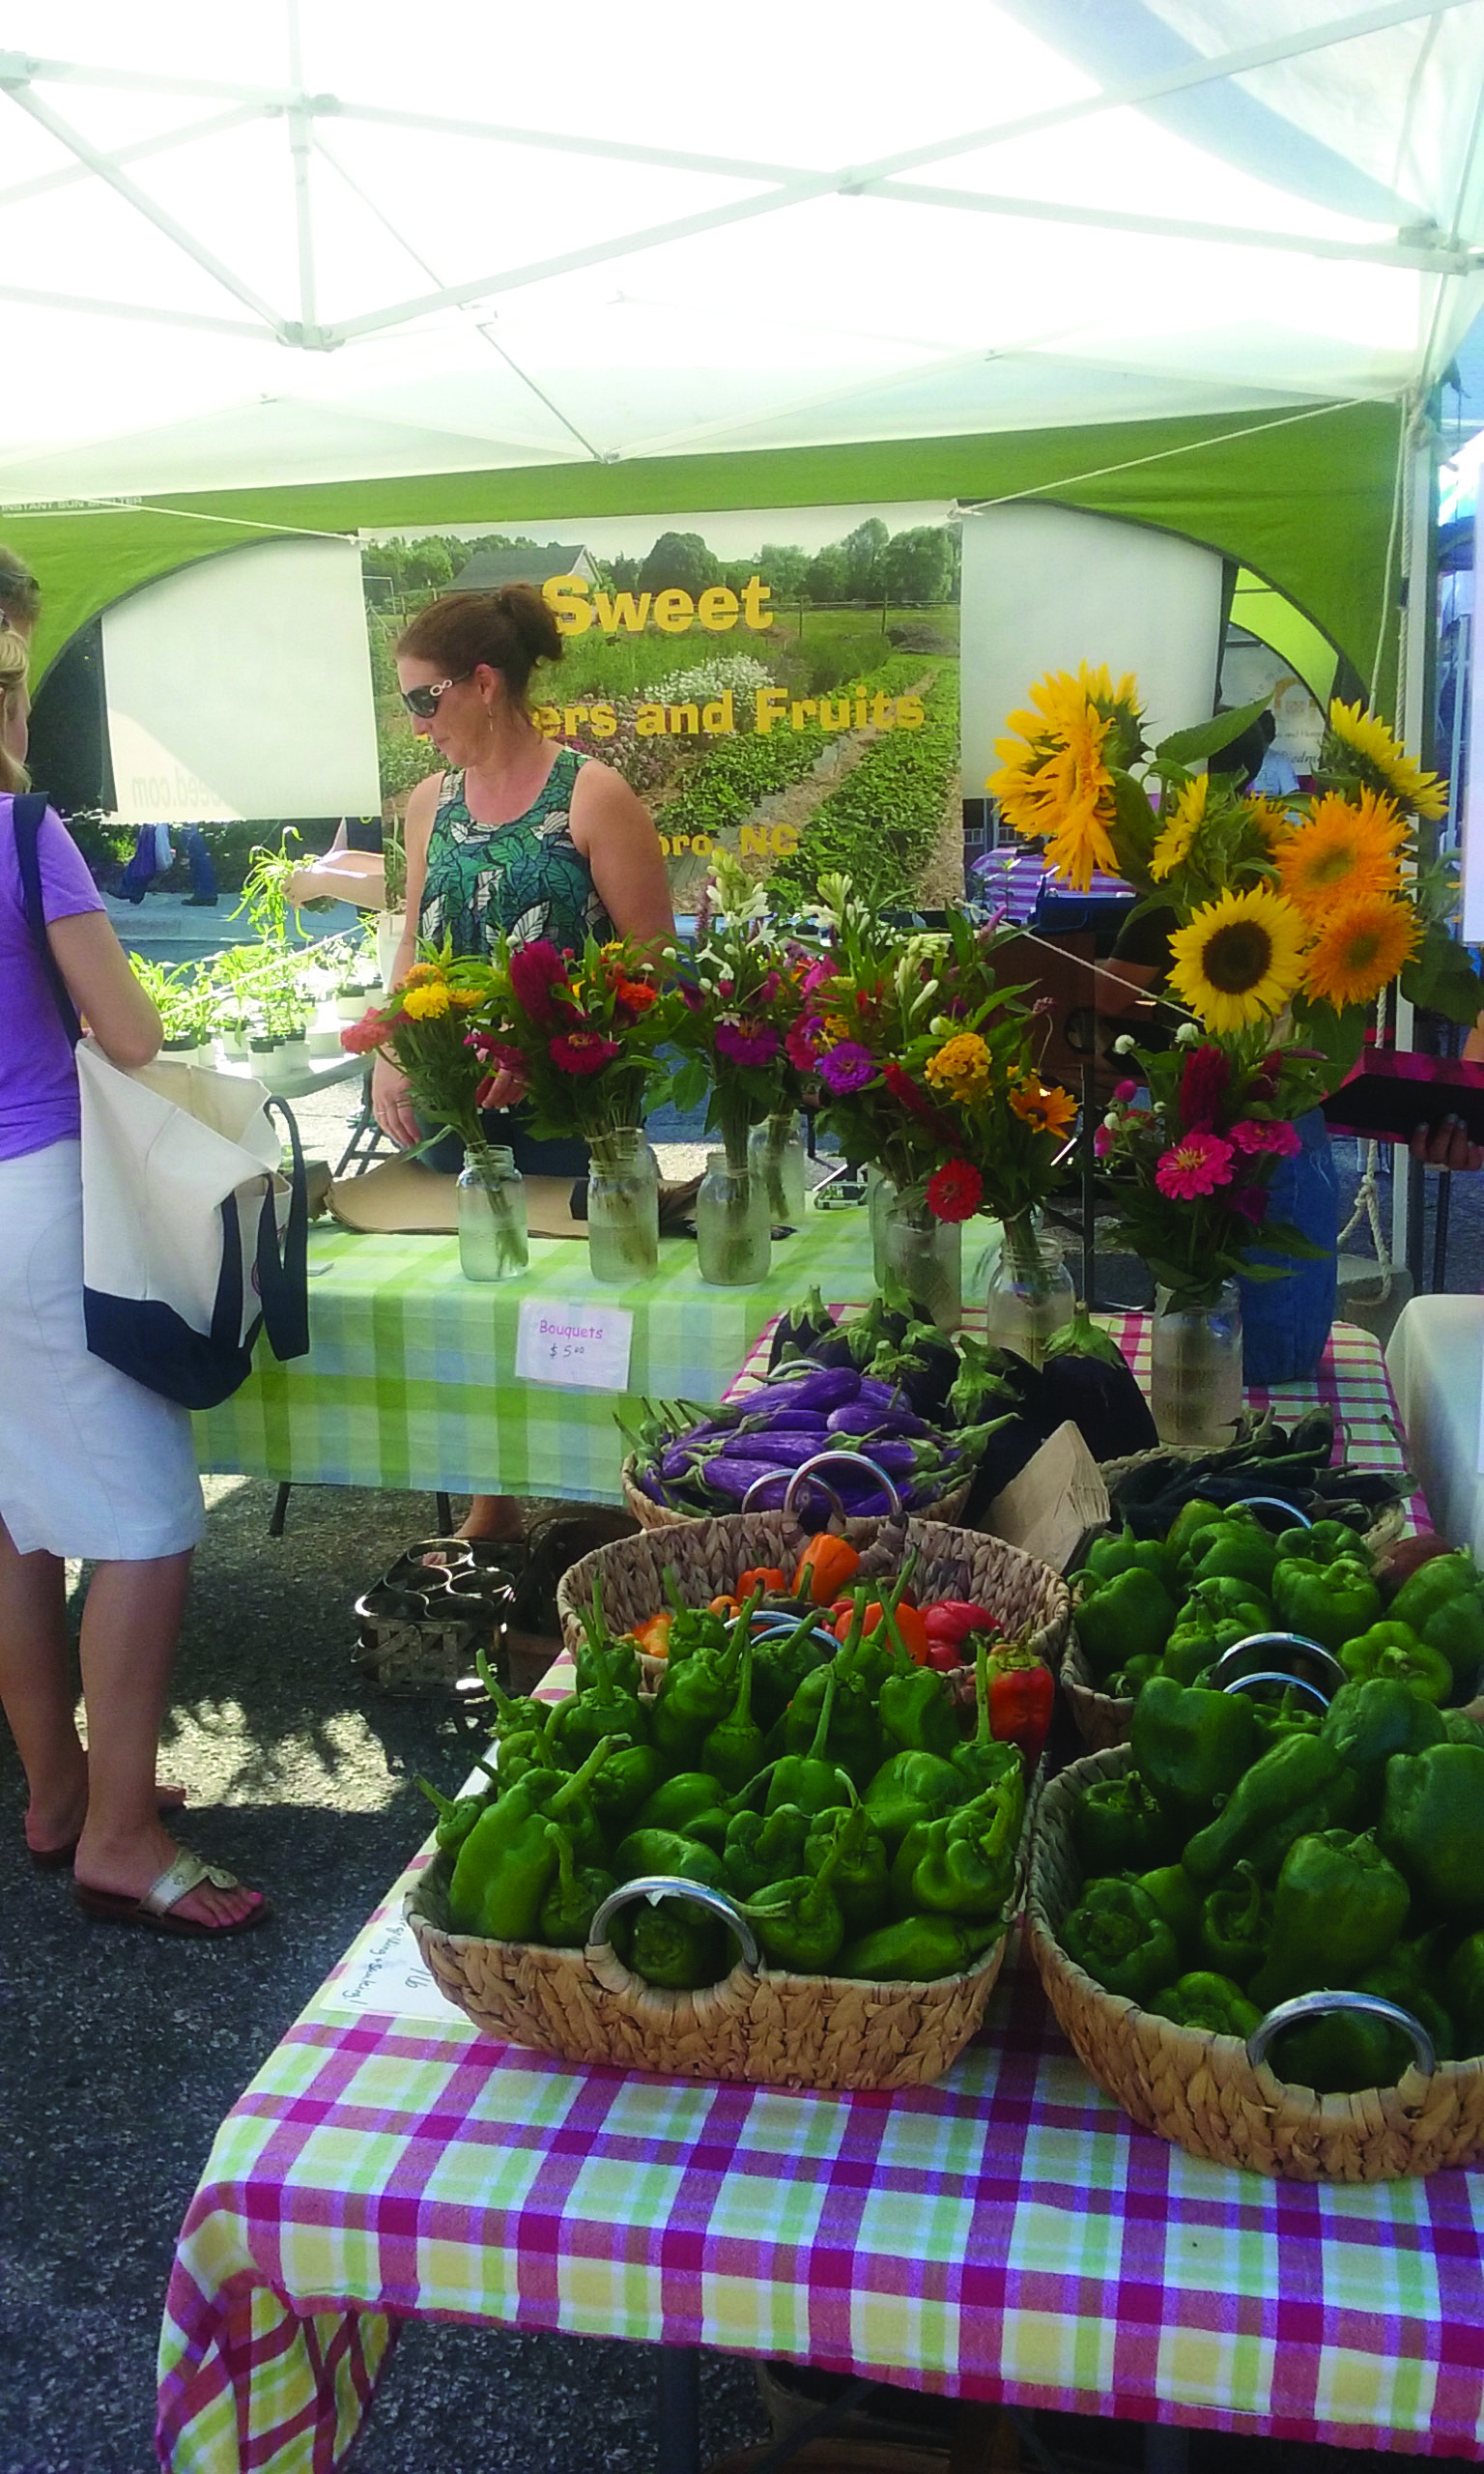 The Apex Farmers Market – Your Saturday Morning Family Destination  By Amy Iori